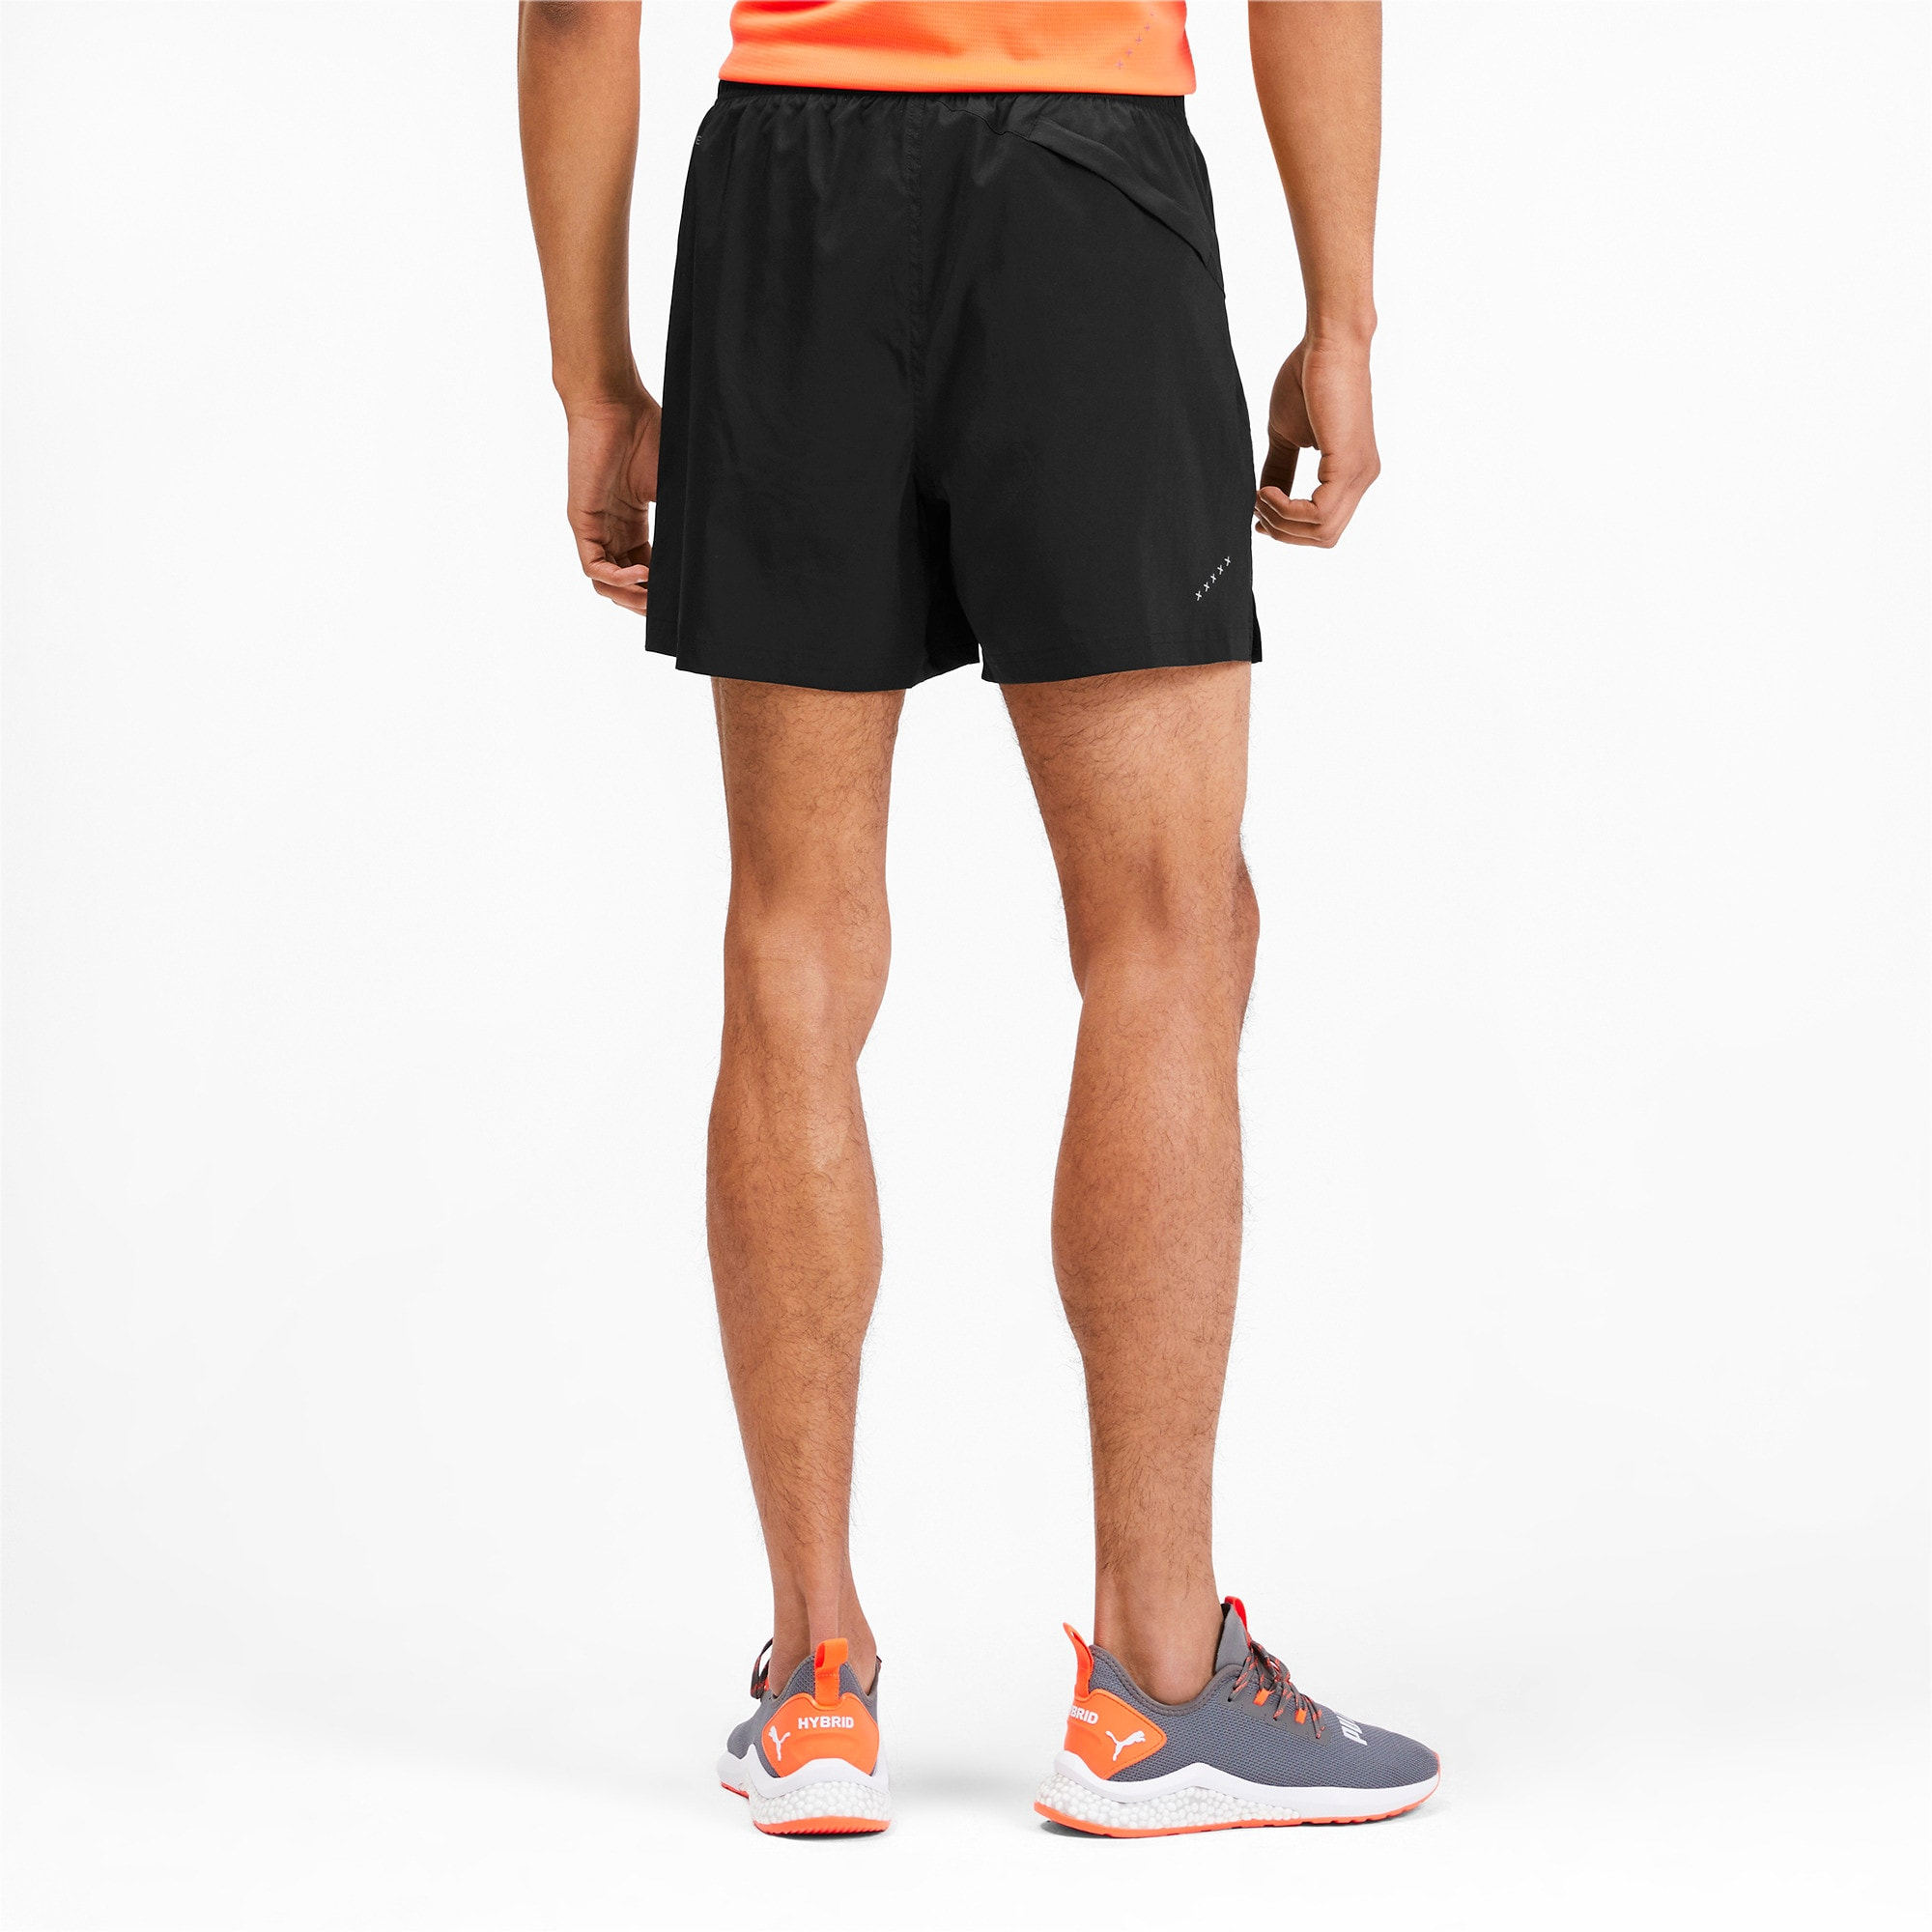 Thumbnail 2 of Ignite Men's Shorts, Puma Black, medium